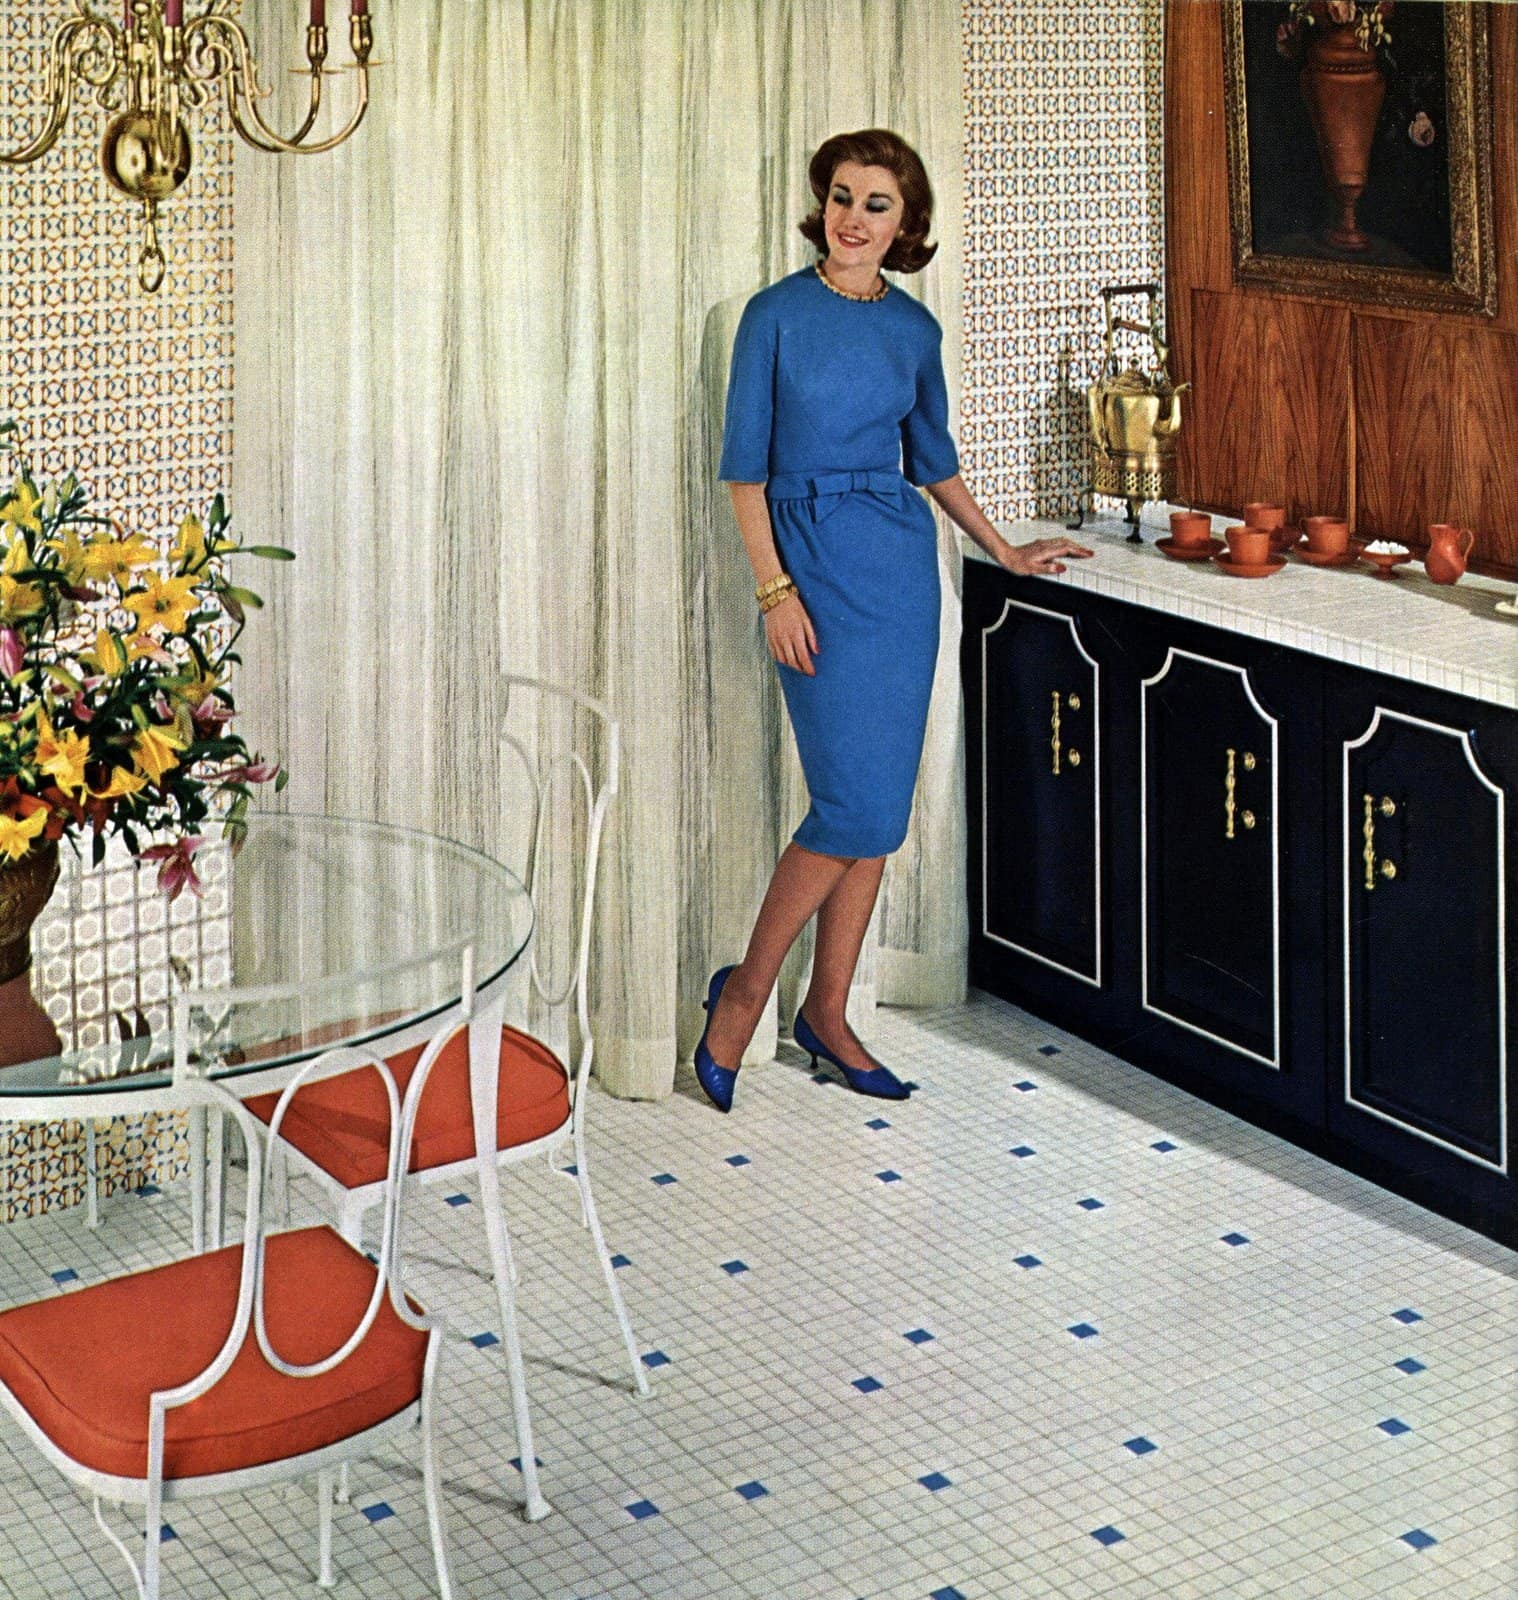 Vintage 1960s ceramic kitchen-dining area flooring and countertops